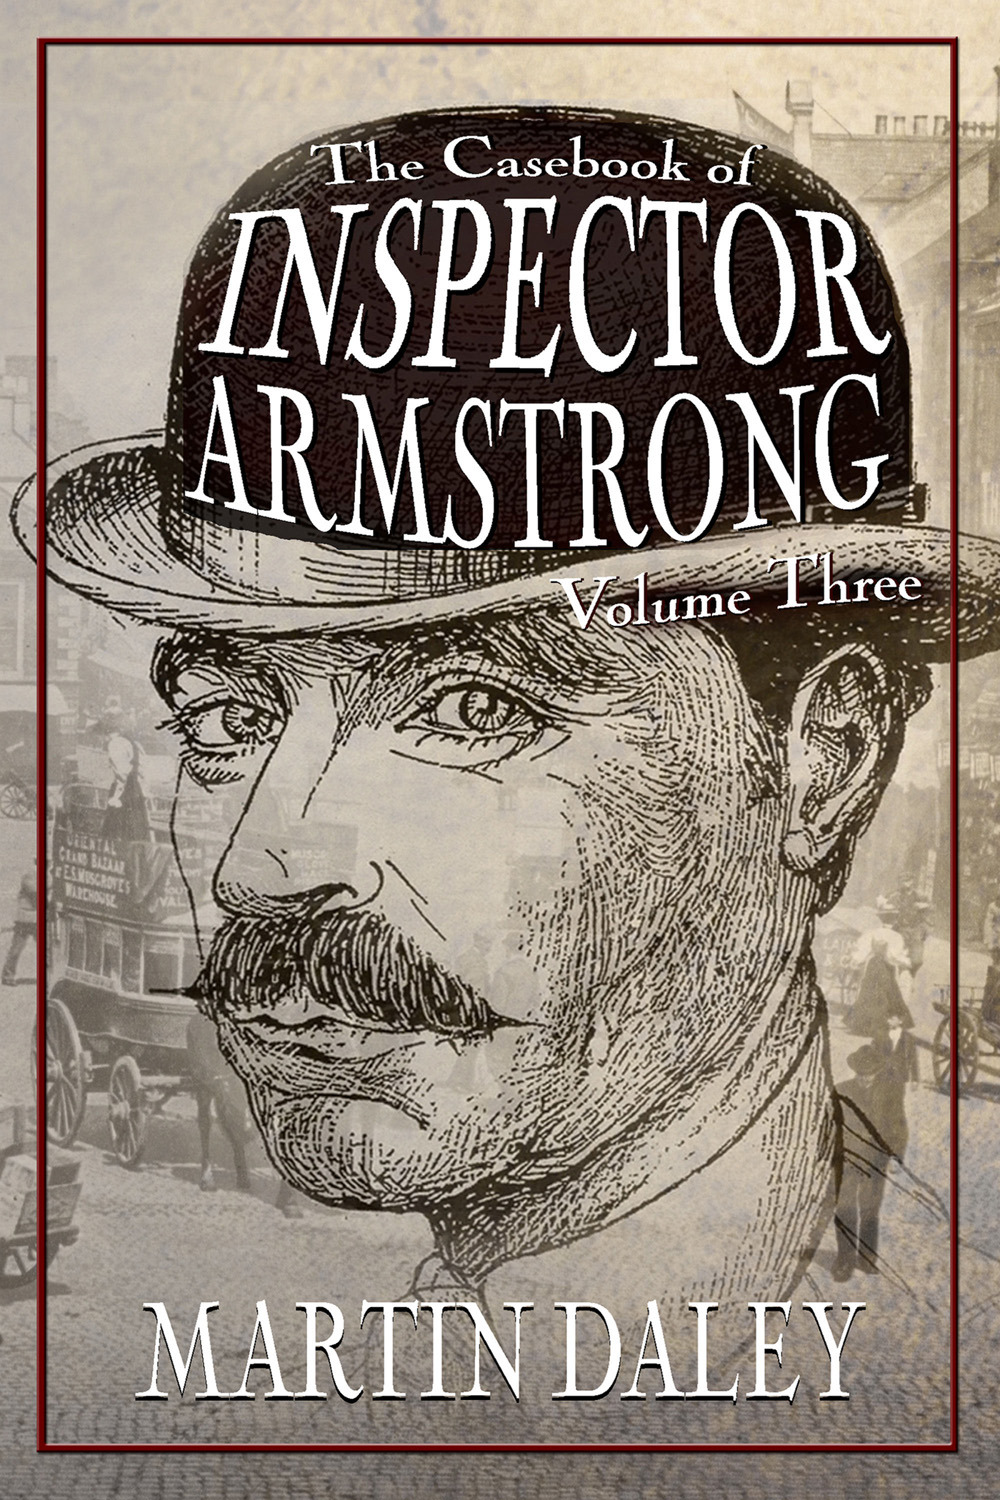 Daley, Martin - The Casebook of Inspector Armstrong - Volume 3, e-kirja